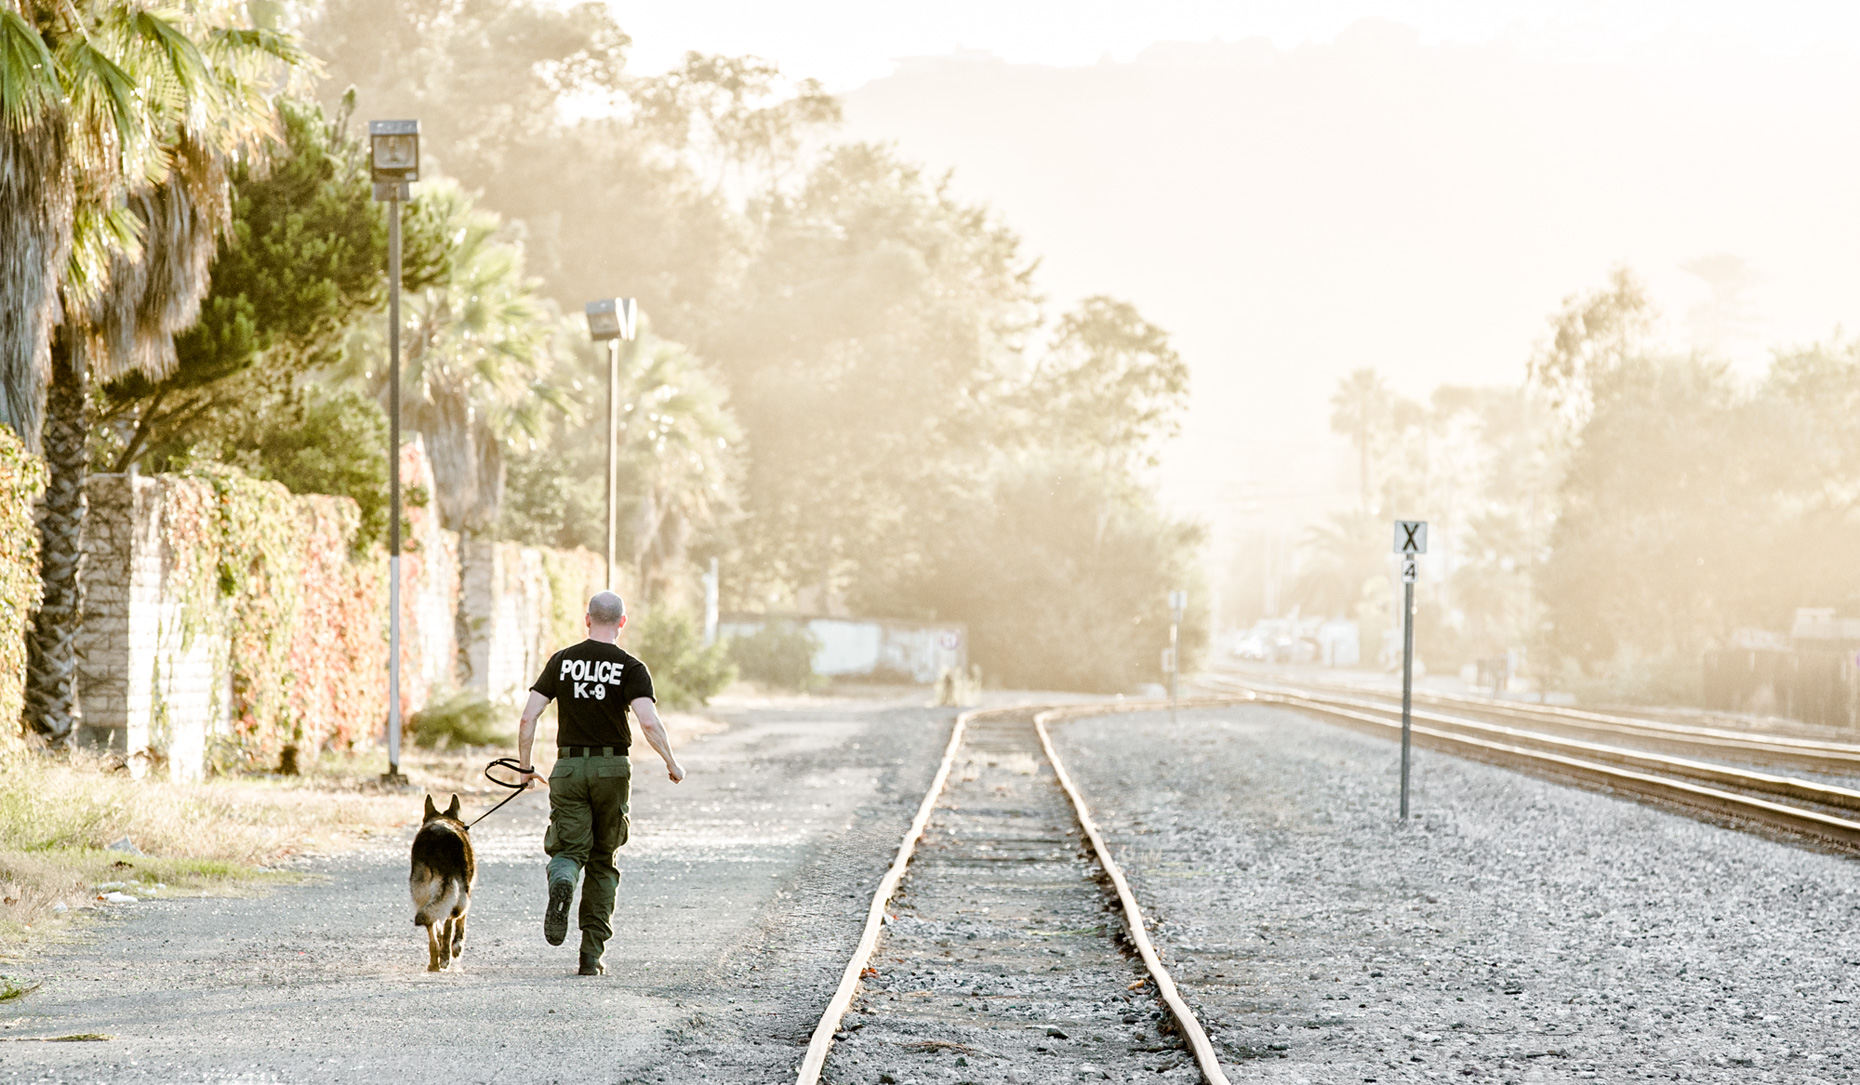 Los Angeles Dog Photography, Michael Brian, Santa Barbara Police K-9 Brag jogs after training with officer David Hedges